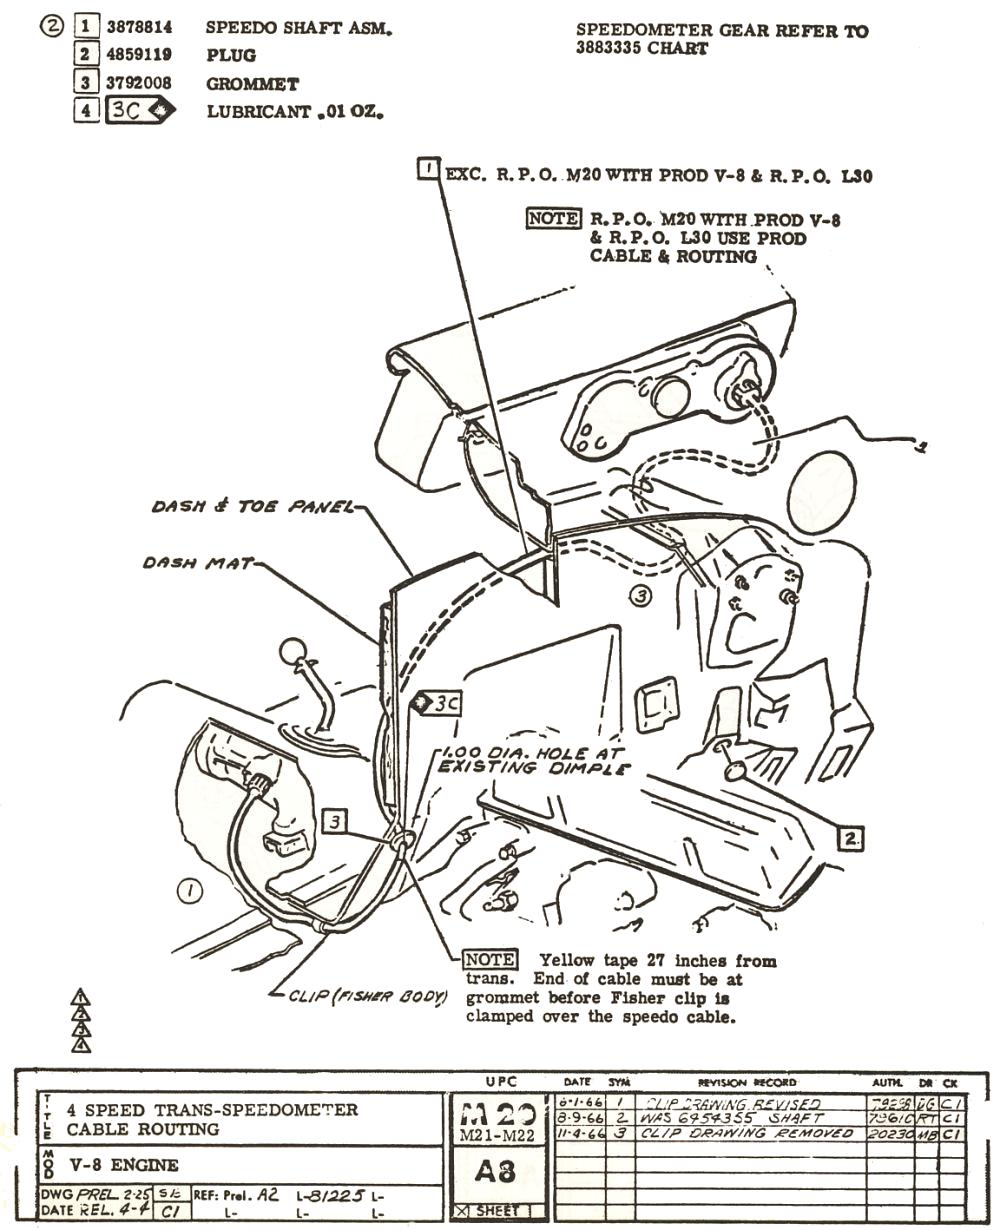 1968 Ford Alternator Wiring Diagram also 2008 Dodge Grand Caravan Undercarriage Parts Diagram additionally 1964 Corvette Windshield Wiper Diagram furthermore 1965 Ford Mustang Door Lock Diagram furthermore 385289 65 Brake Pedal Diagram. on 1969 mustang wiring diagram